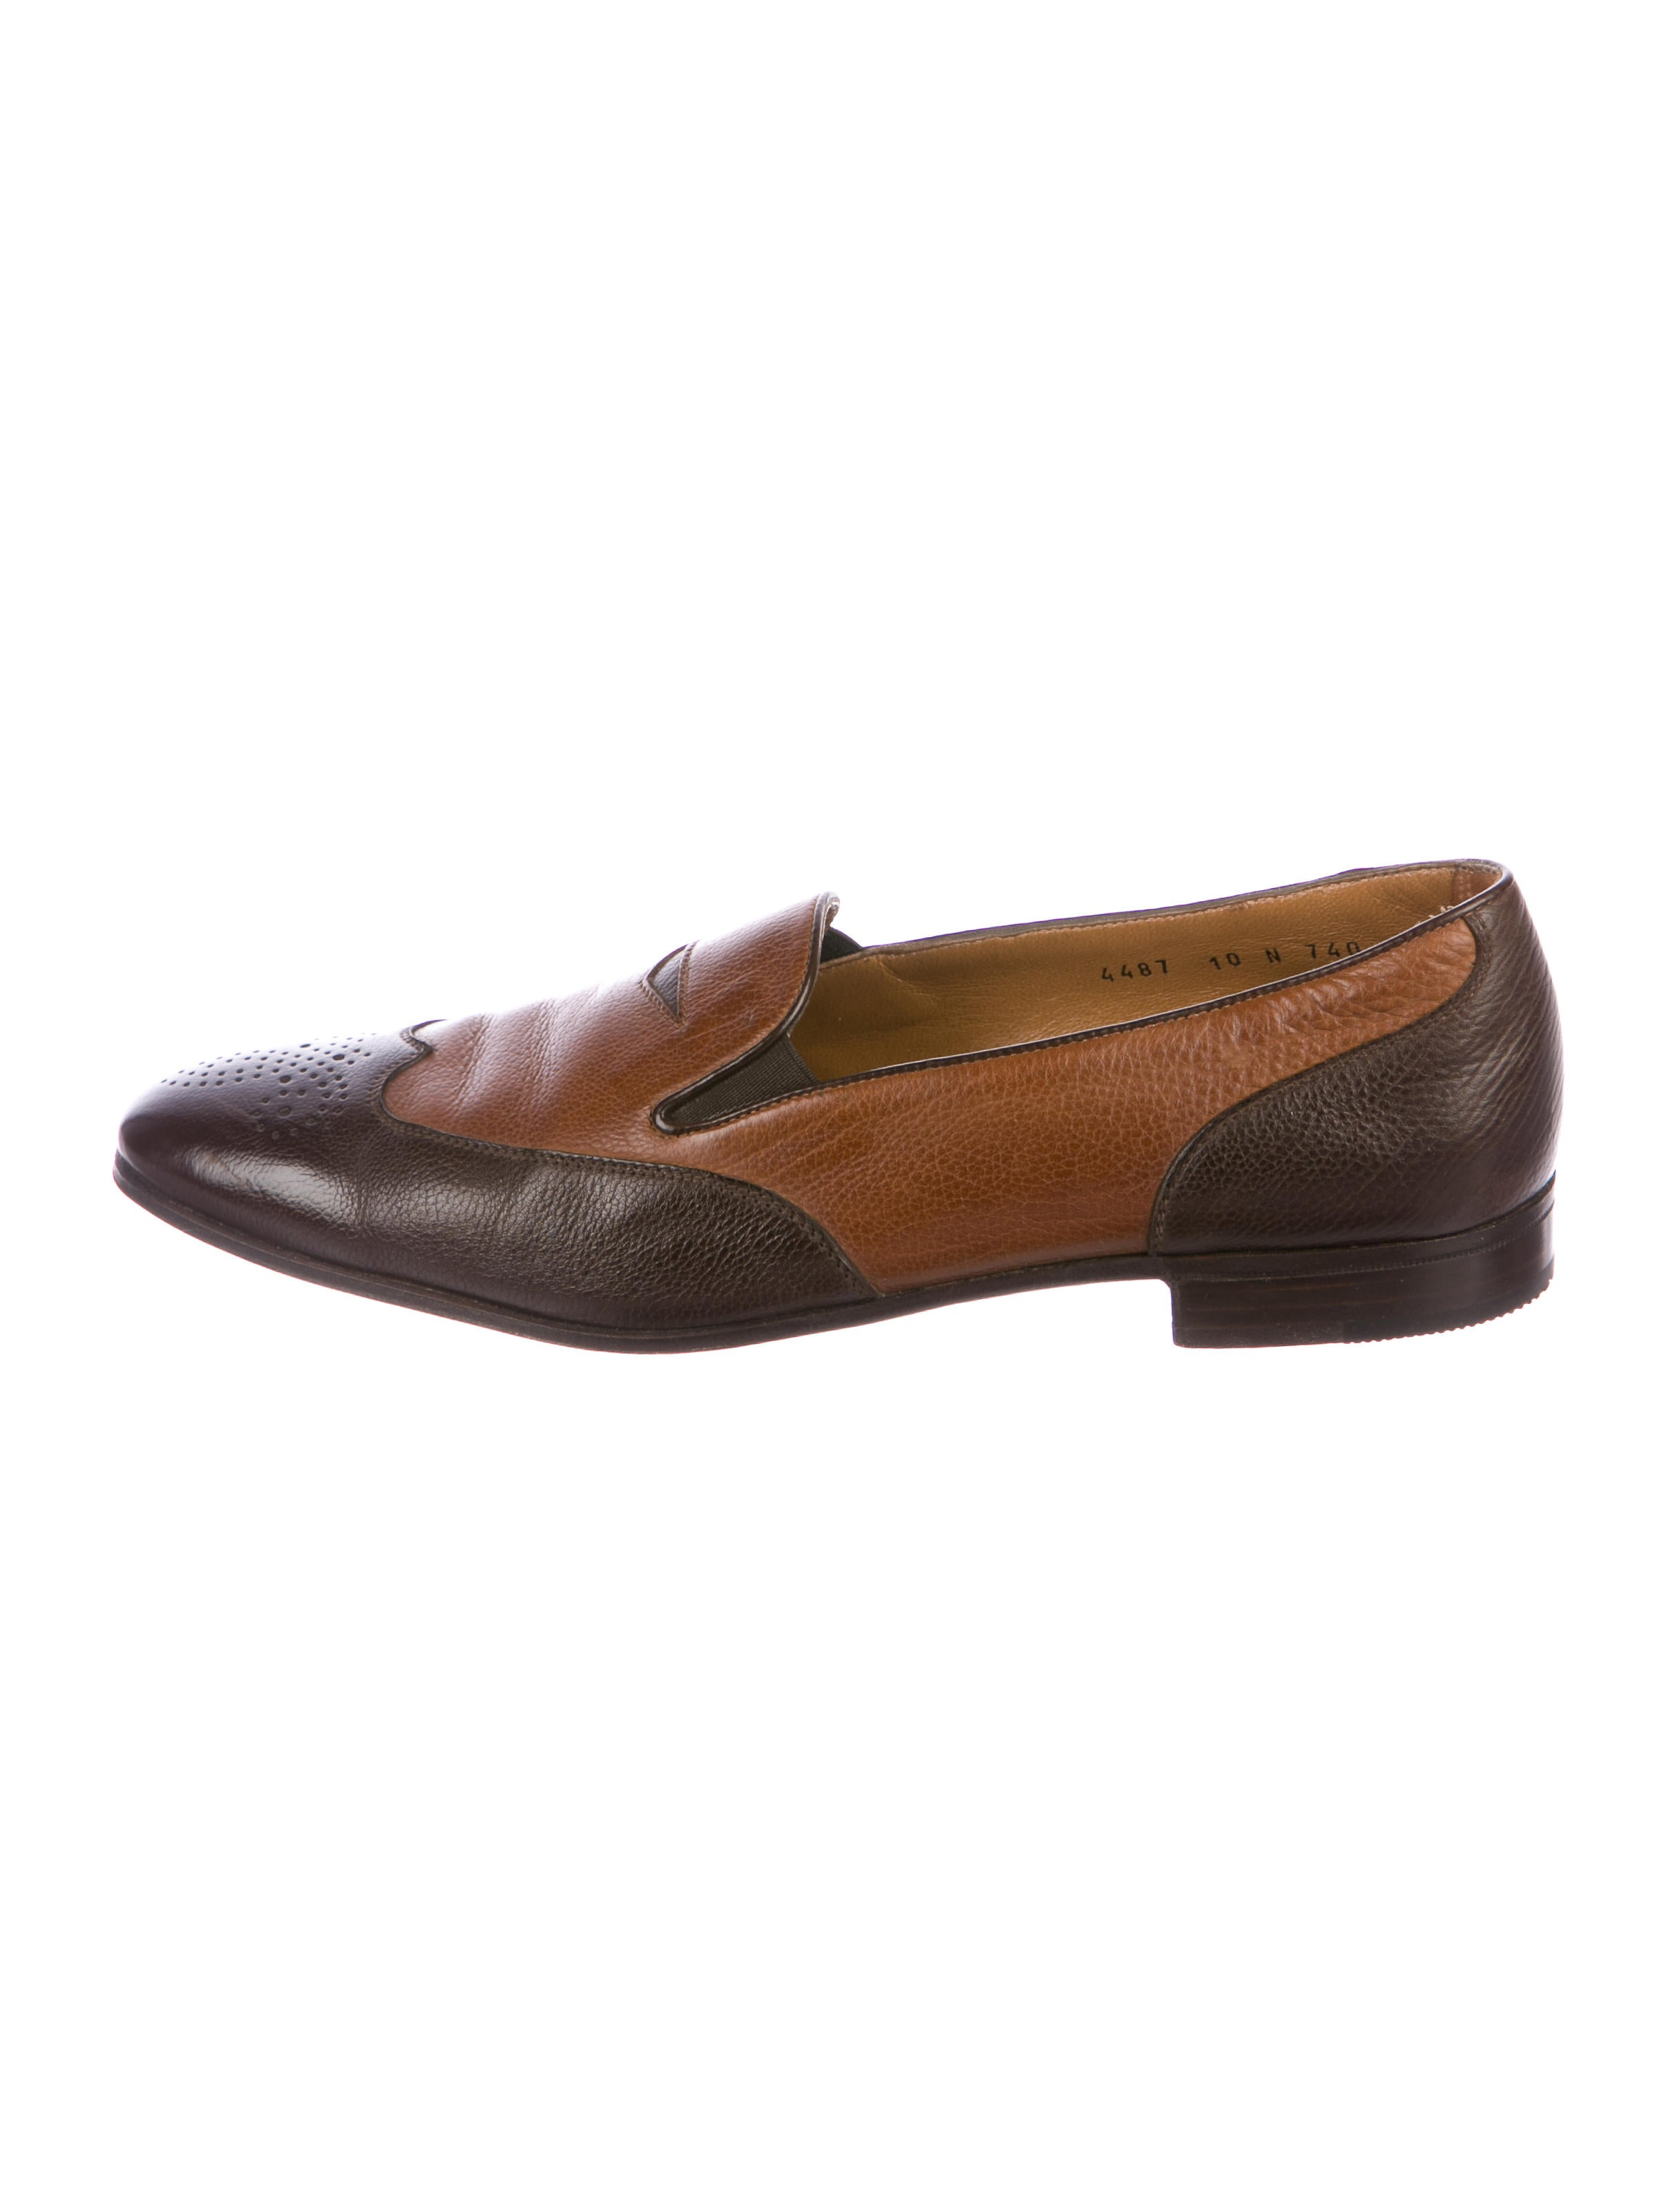 sale limited edition Gravati x Arthur Beren Leather Loafers free shipping discounts discount excellent discount genuine hOkwqdh6f